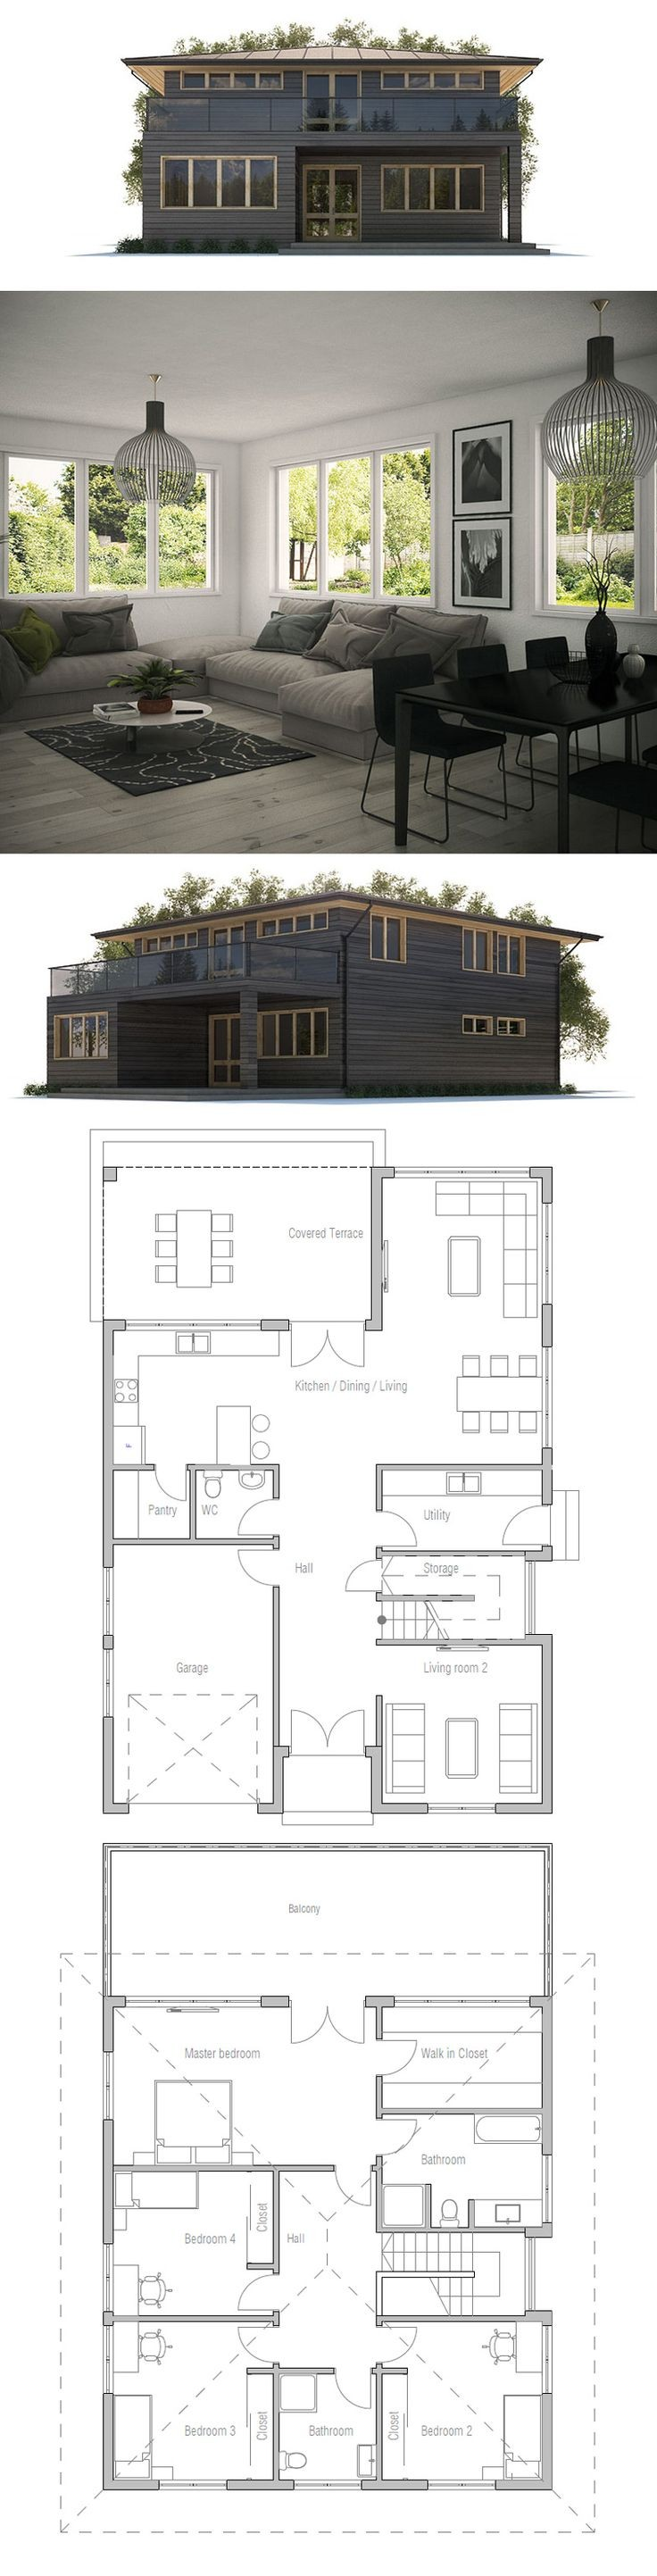 House Plans in Modern Architecture